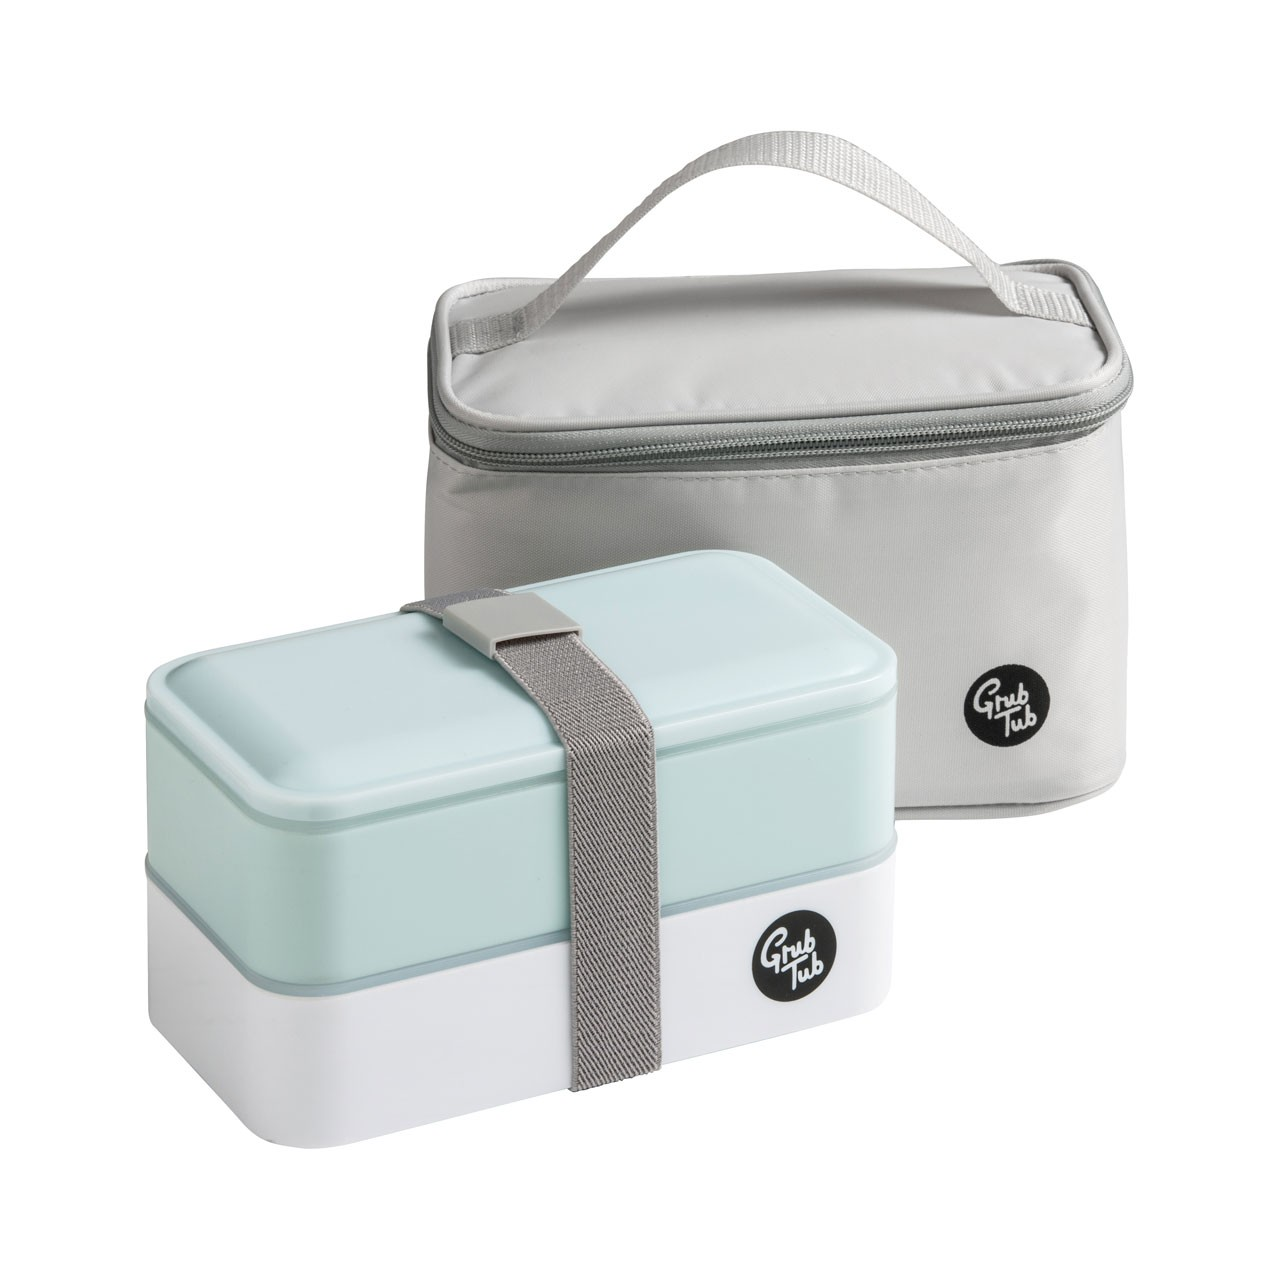 Grub Tub Lunch Box with 2 Containers/Cool Bag/Cutlery - Mint